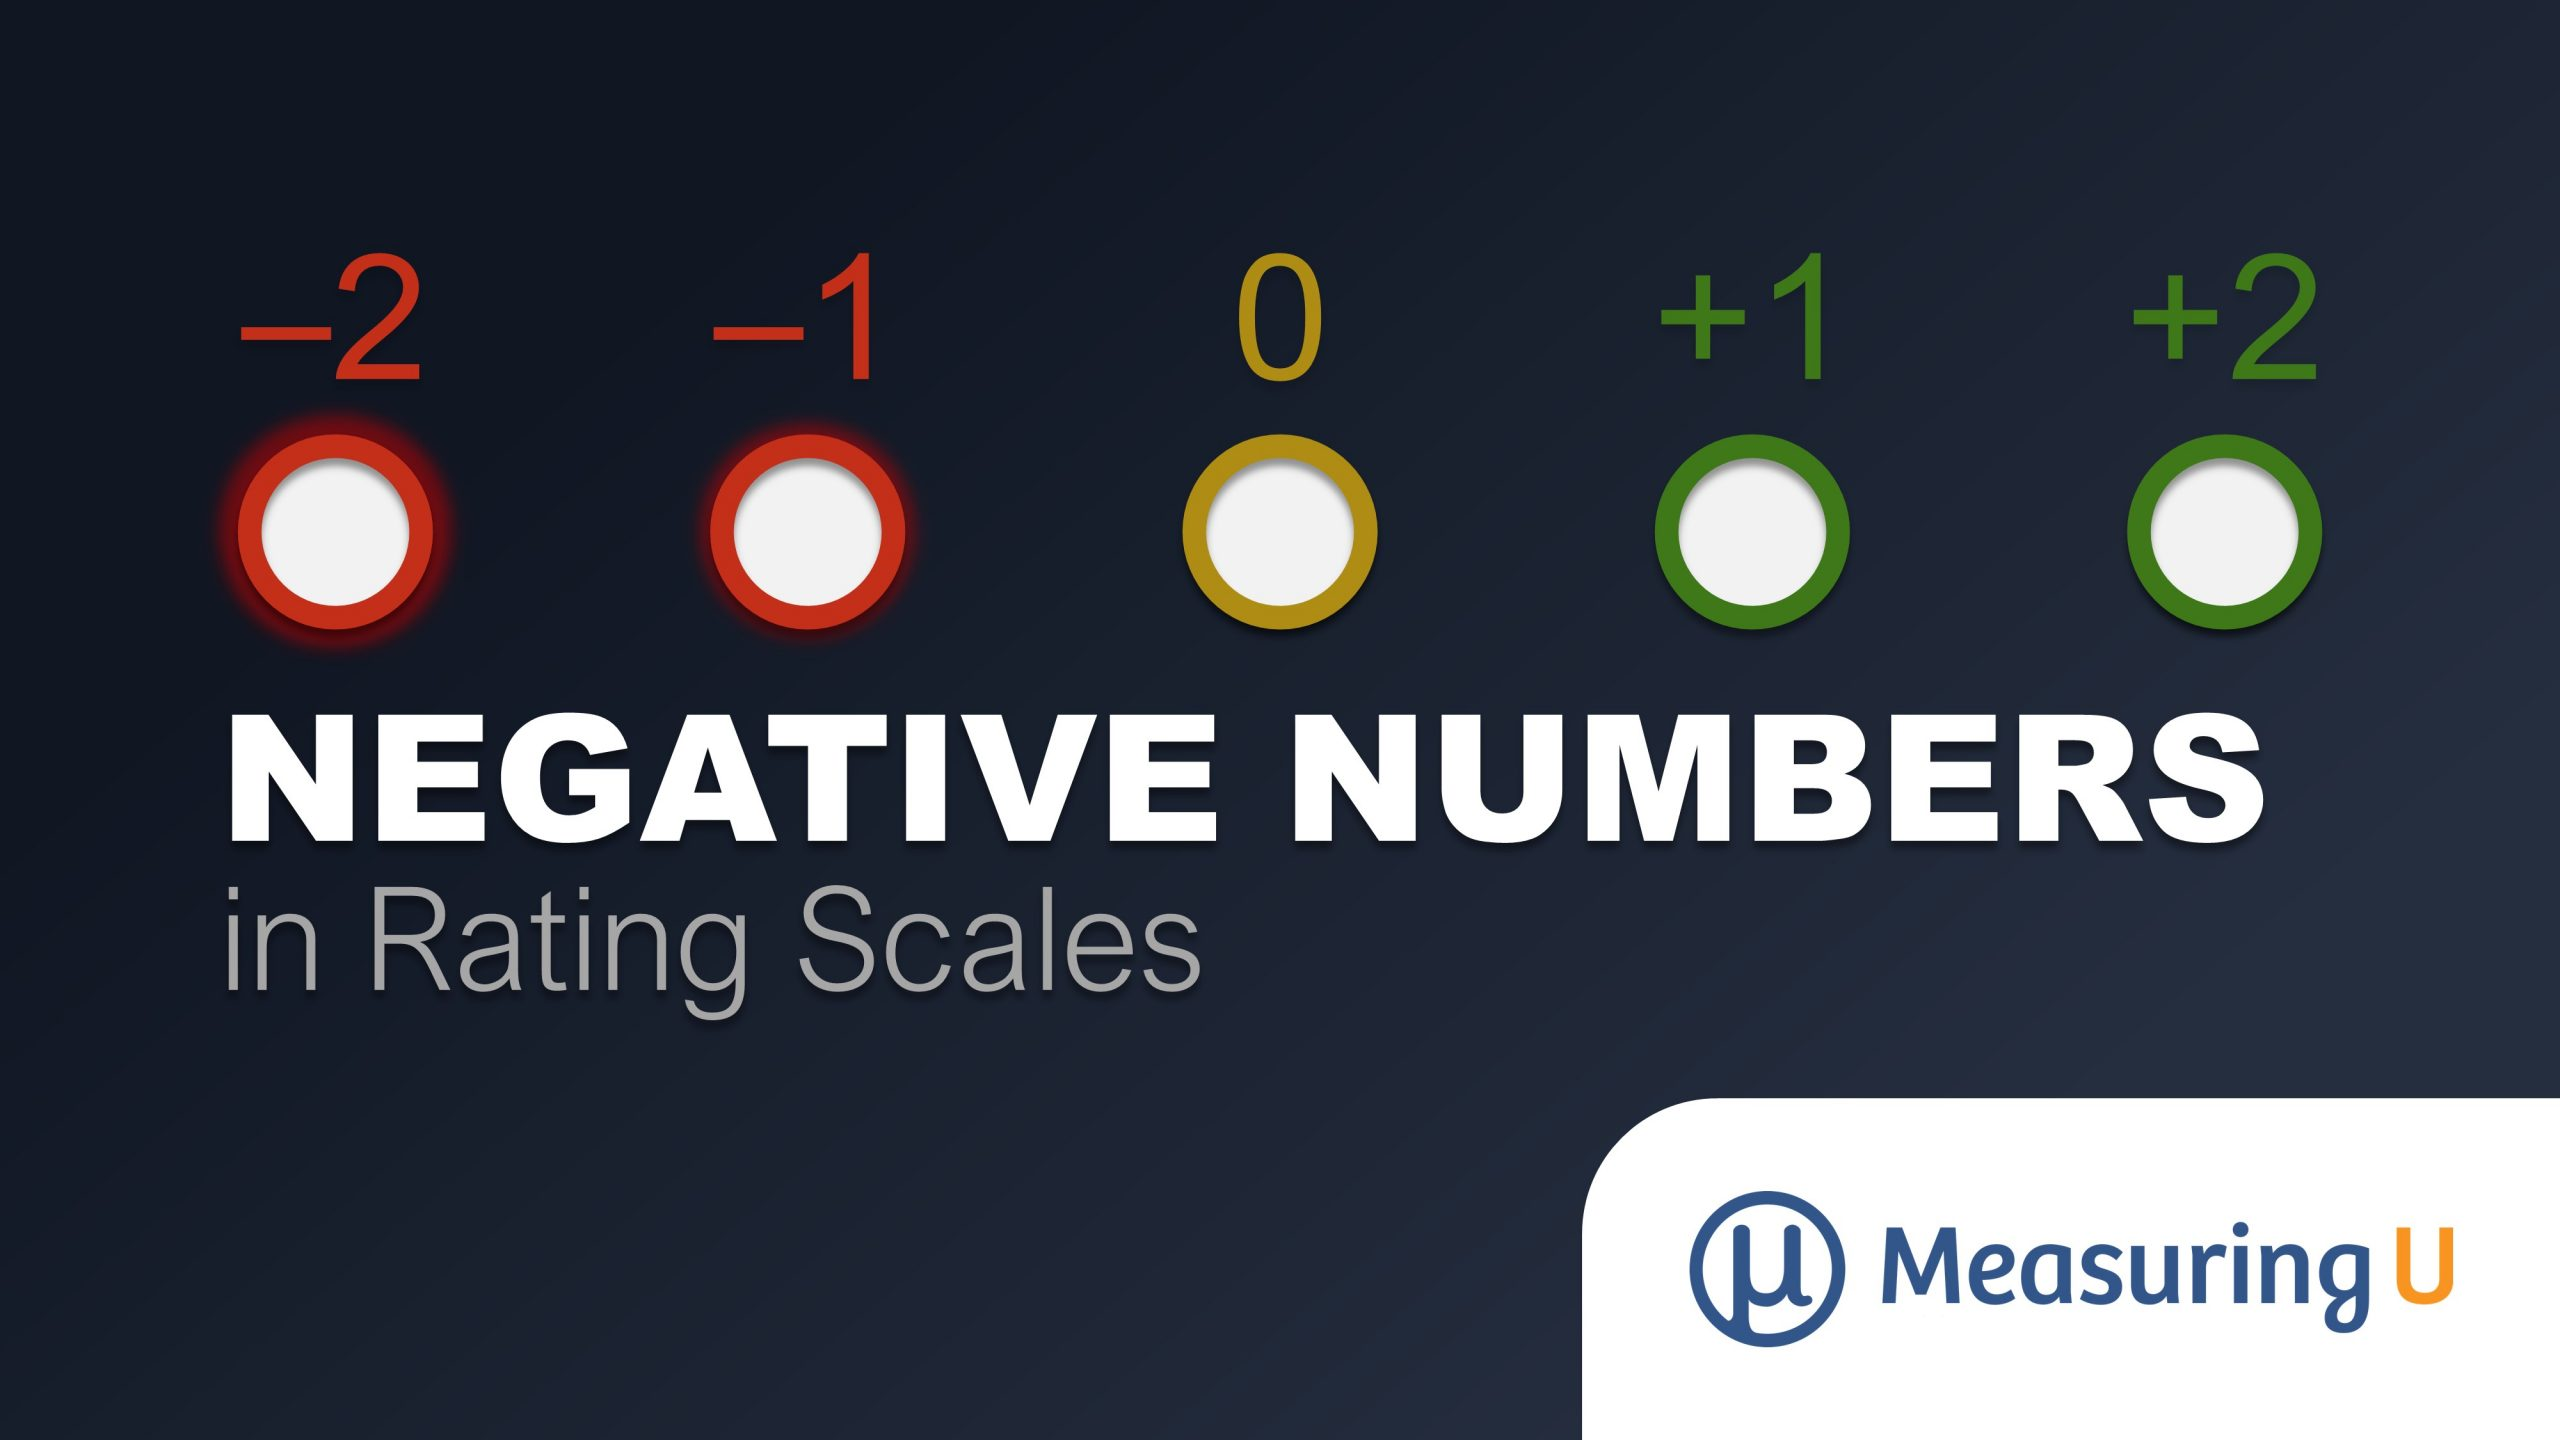 Should You Use Negative Numbers in Rating Scales?